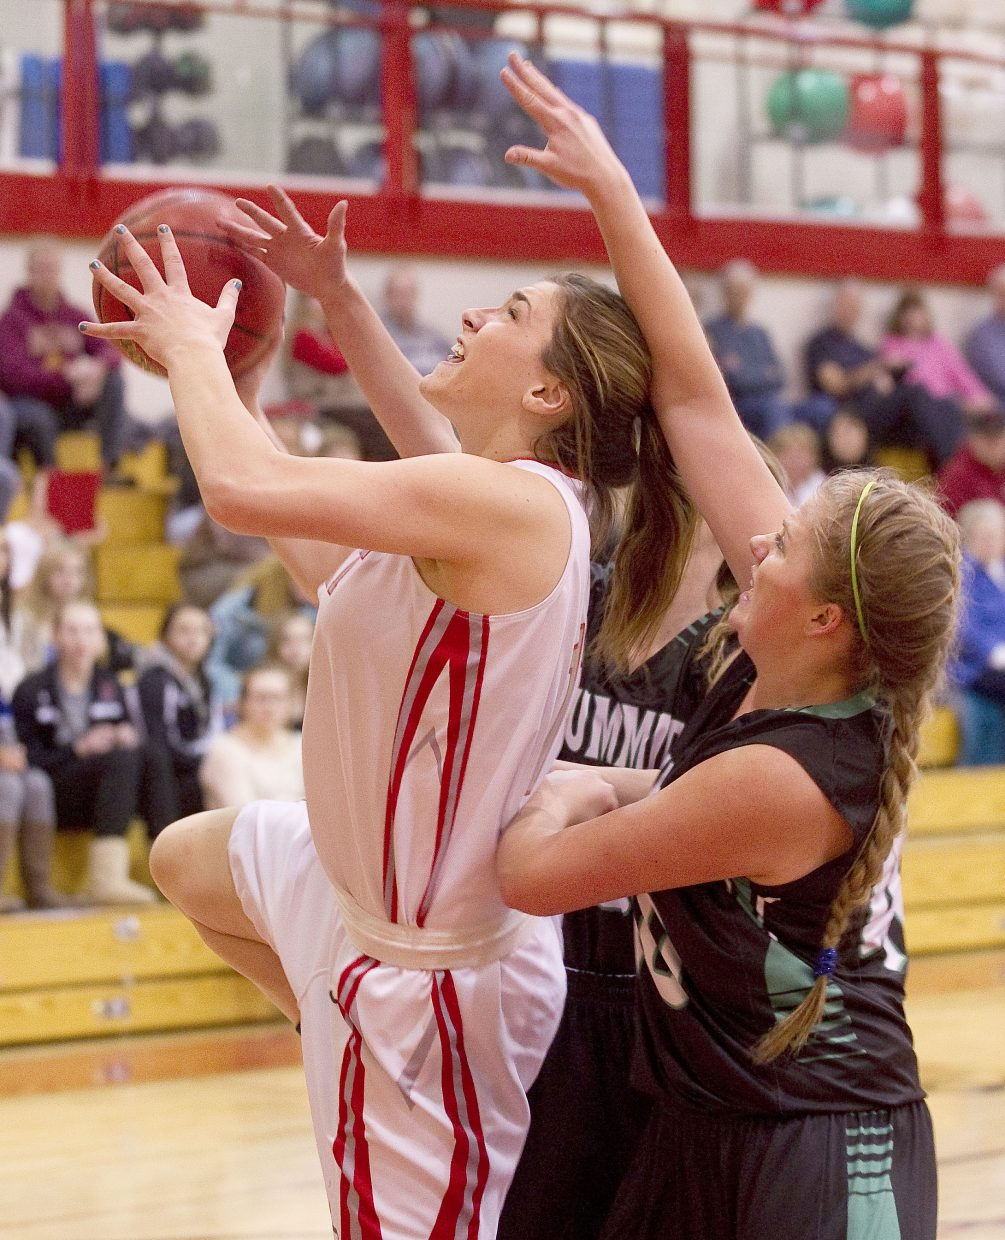 Steamboat Springs senior Maddie Robertson has the ball knocked away as she drives to the basket in the first half of Tuesday night's 49-28 victory against Summit County.